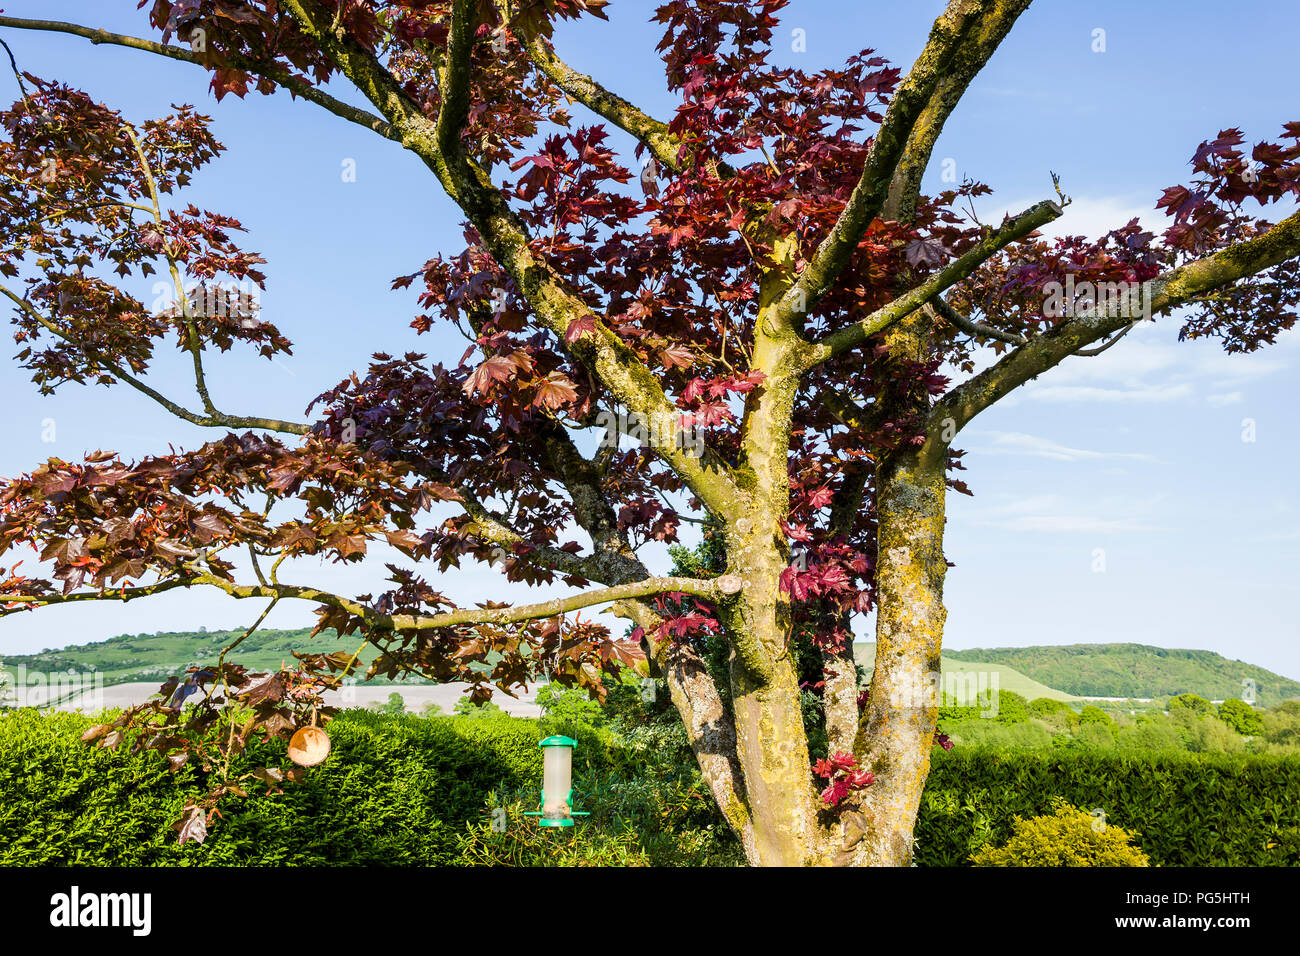 After die-back affected a mature Acer, judicious pruning in the autumn encouraged new growth in the heart of the tree in UK - Stock Image